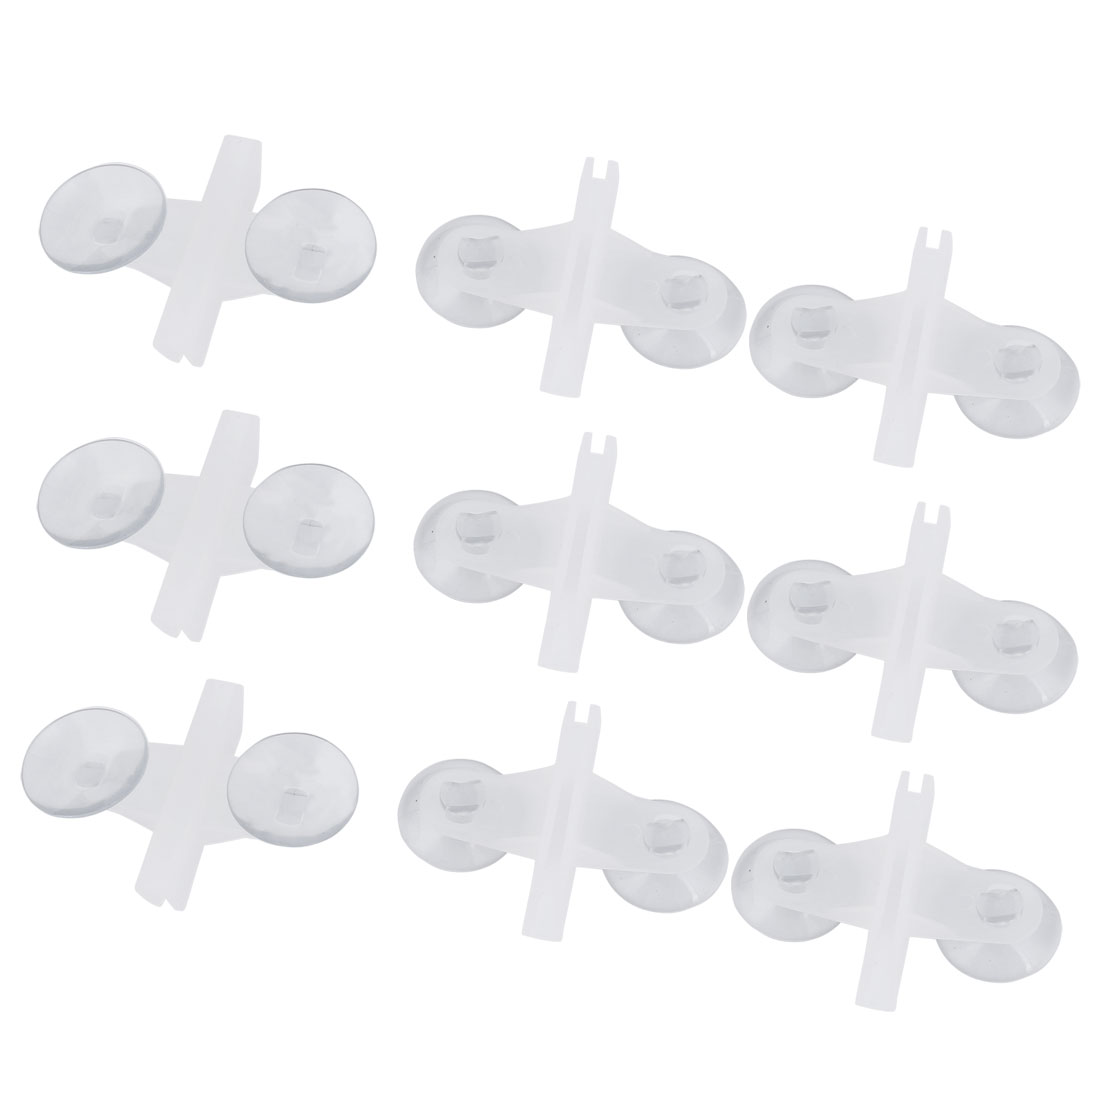 Plastic Double Suction Cup Fish Tank Divider Sheet Glass Holder White Clear 9pcs